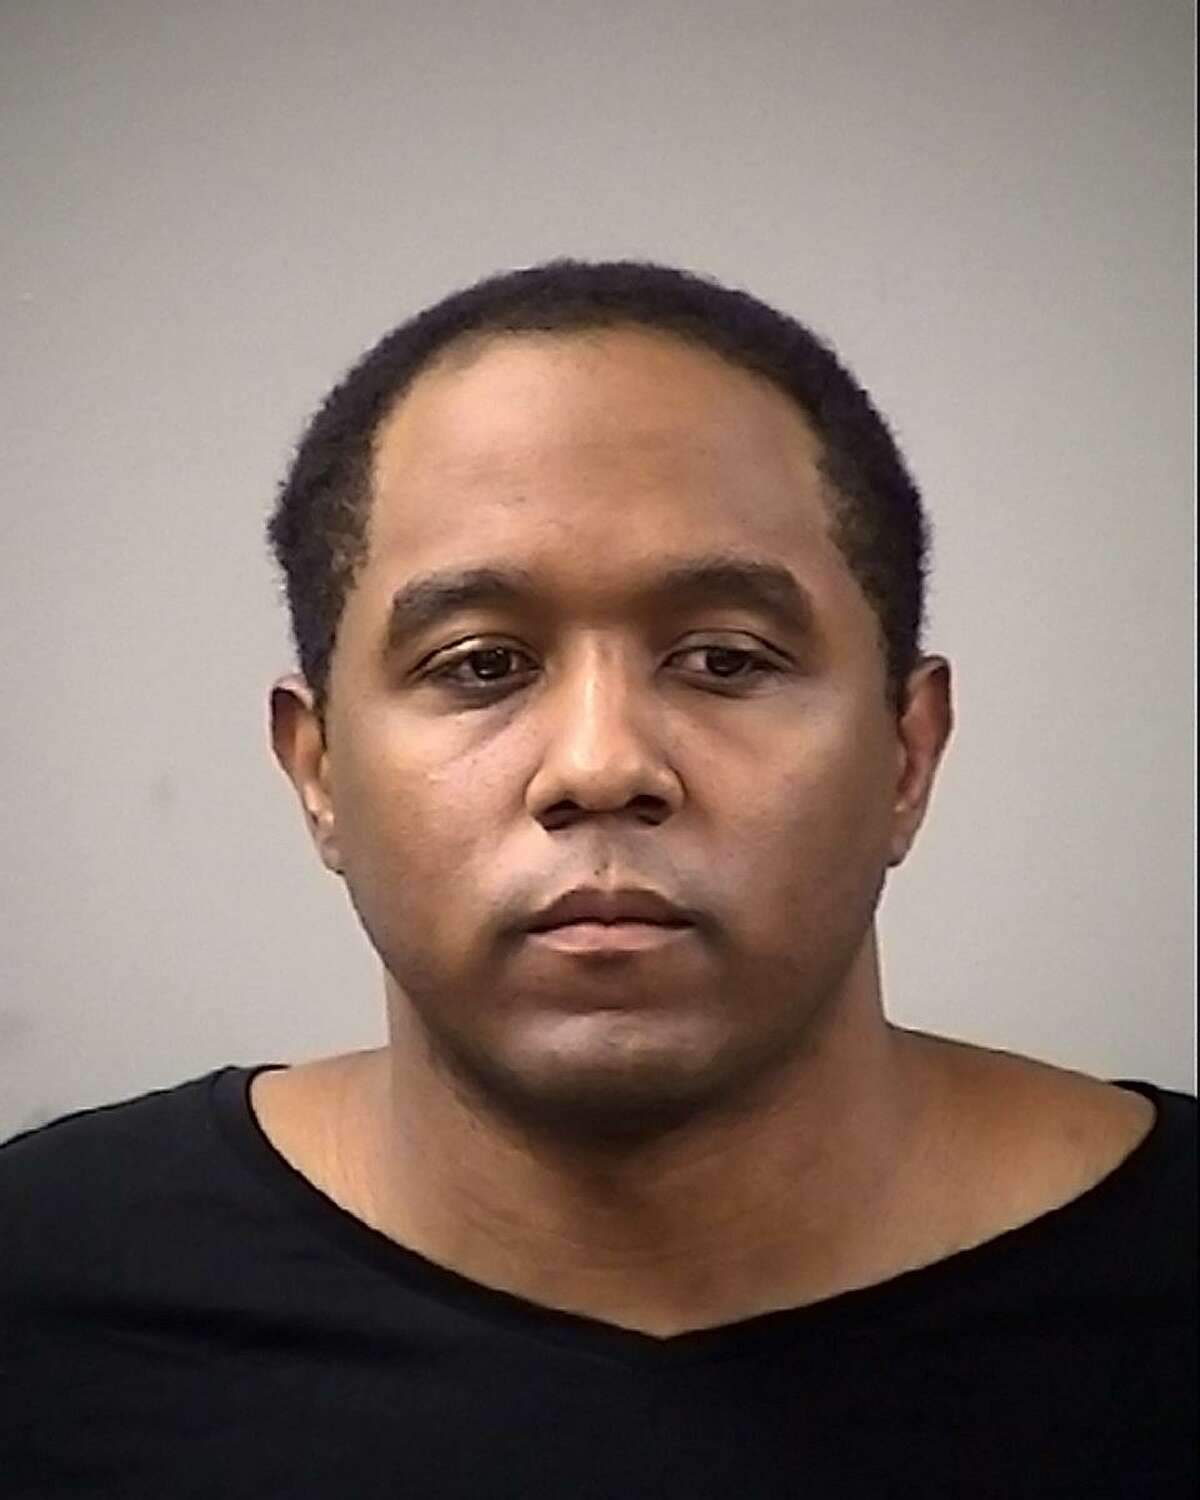 Booking mug (date unknown) of Antronie Scott, 36, who was shot to death by a San Antonio police officer Feb. 5, 2016.